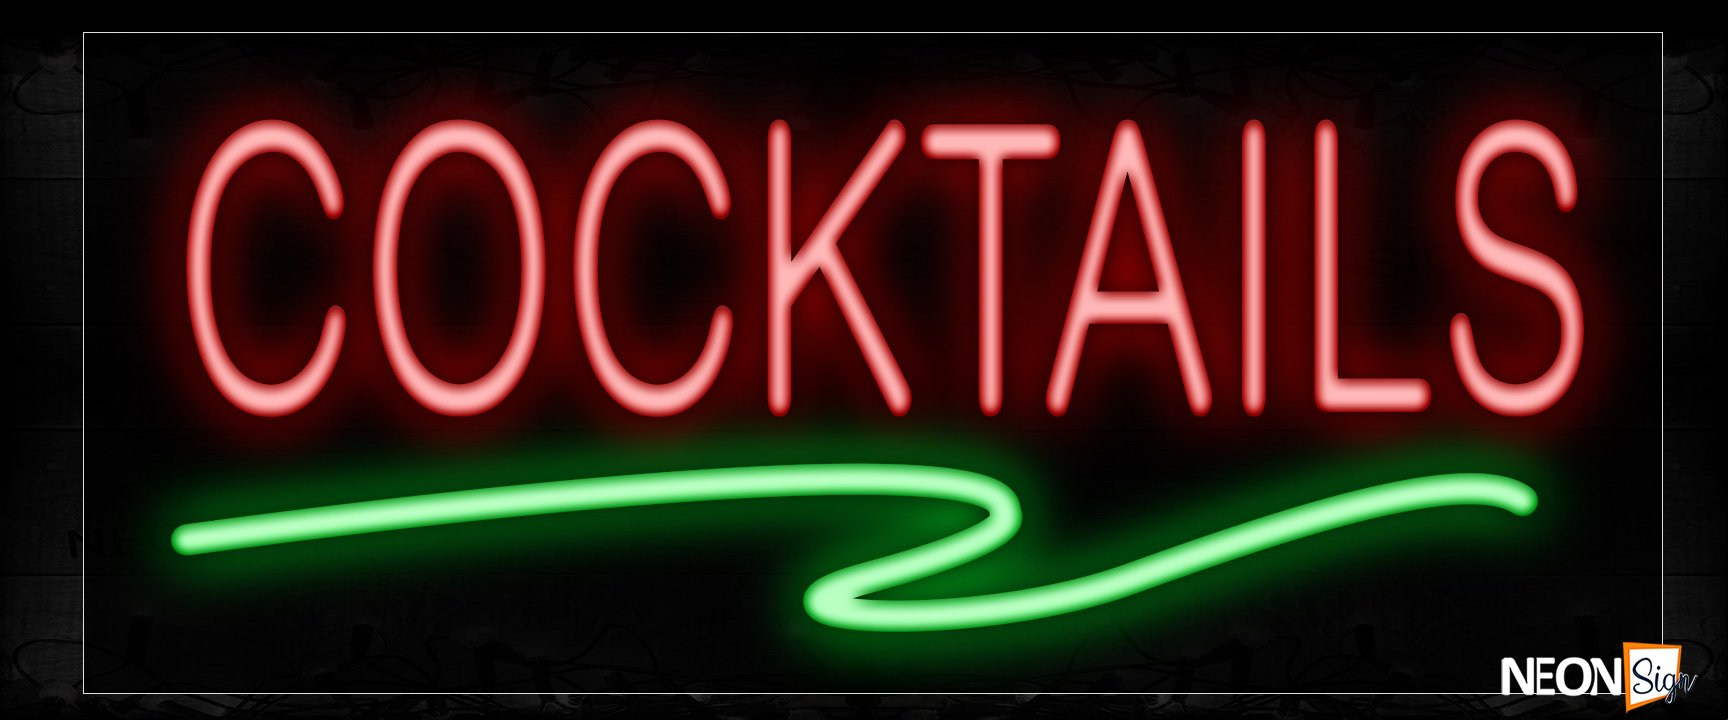 Image of 12040 Cocktails In Red With Green Line Neon Signs_10x24 Black Backing